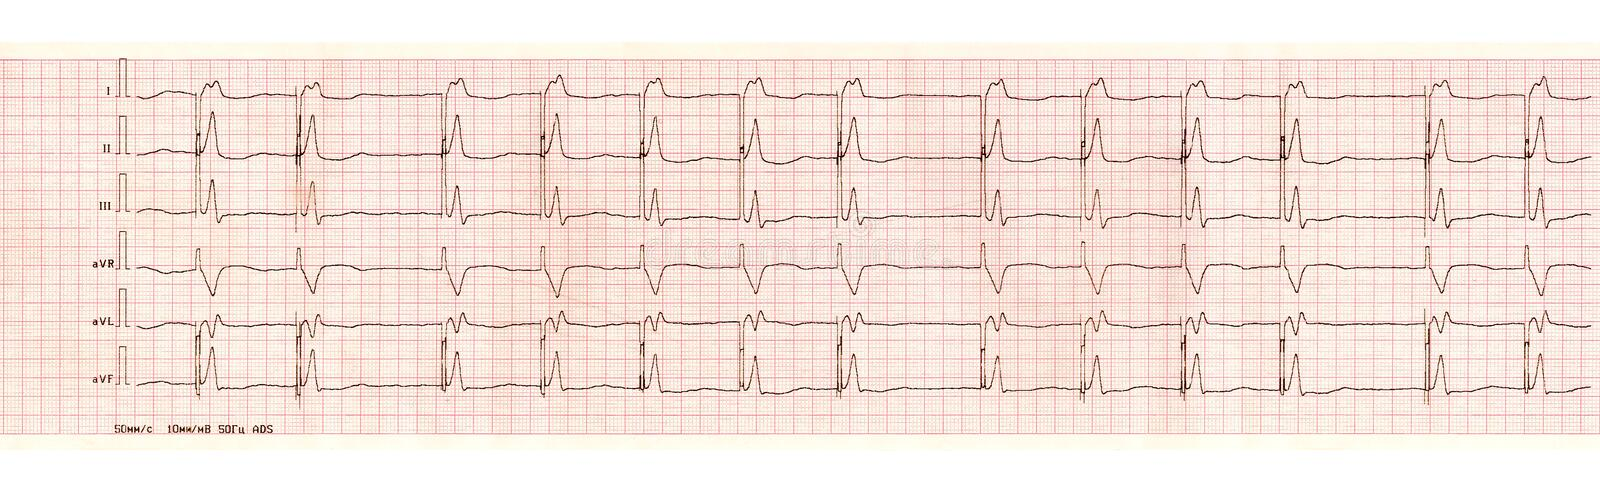 ECG with pacemaker arrhythmia ventricular stimulation. Cardiology and cardiosurgery. ECG tape with the pacemaker arrhythmia the ventricular stimulation royalty free stock photo